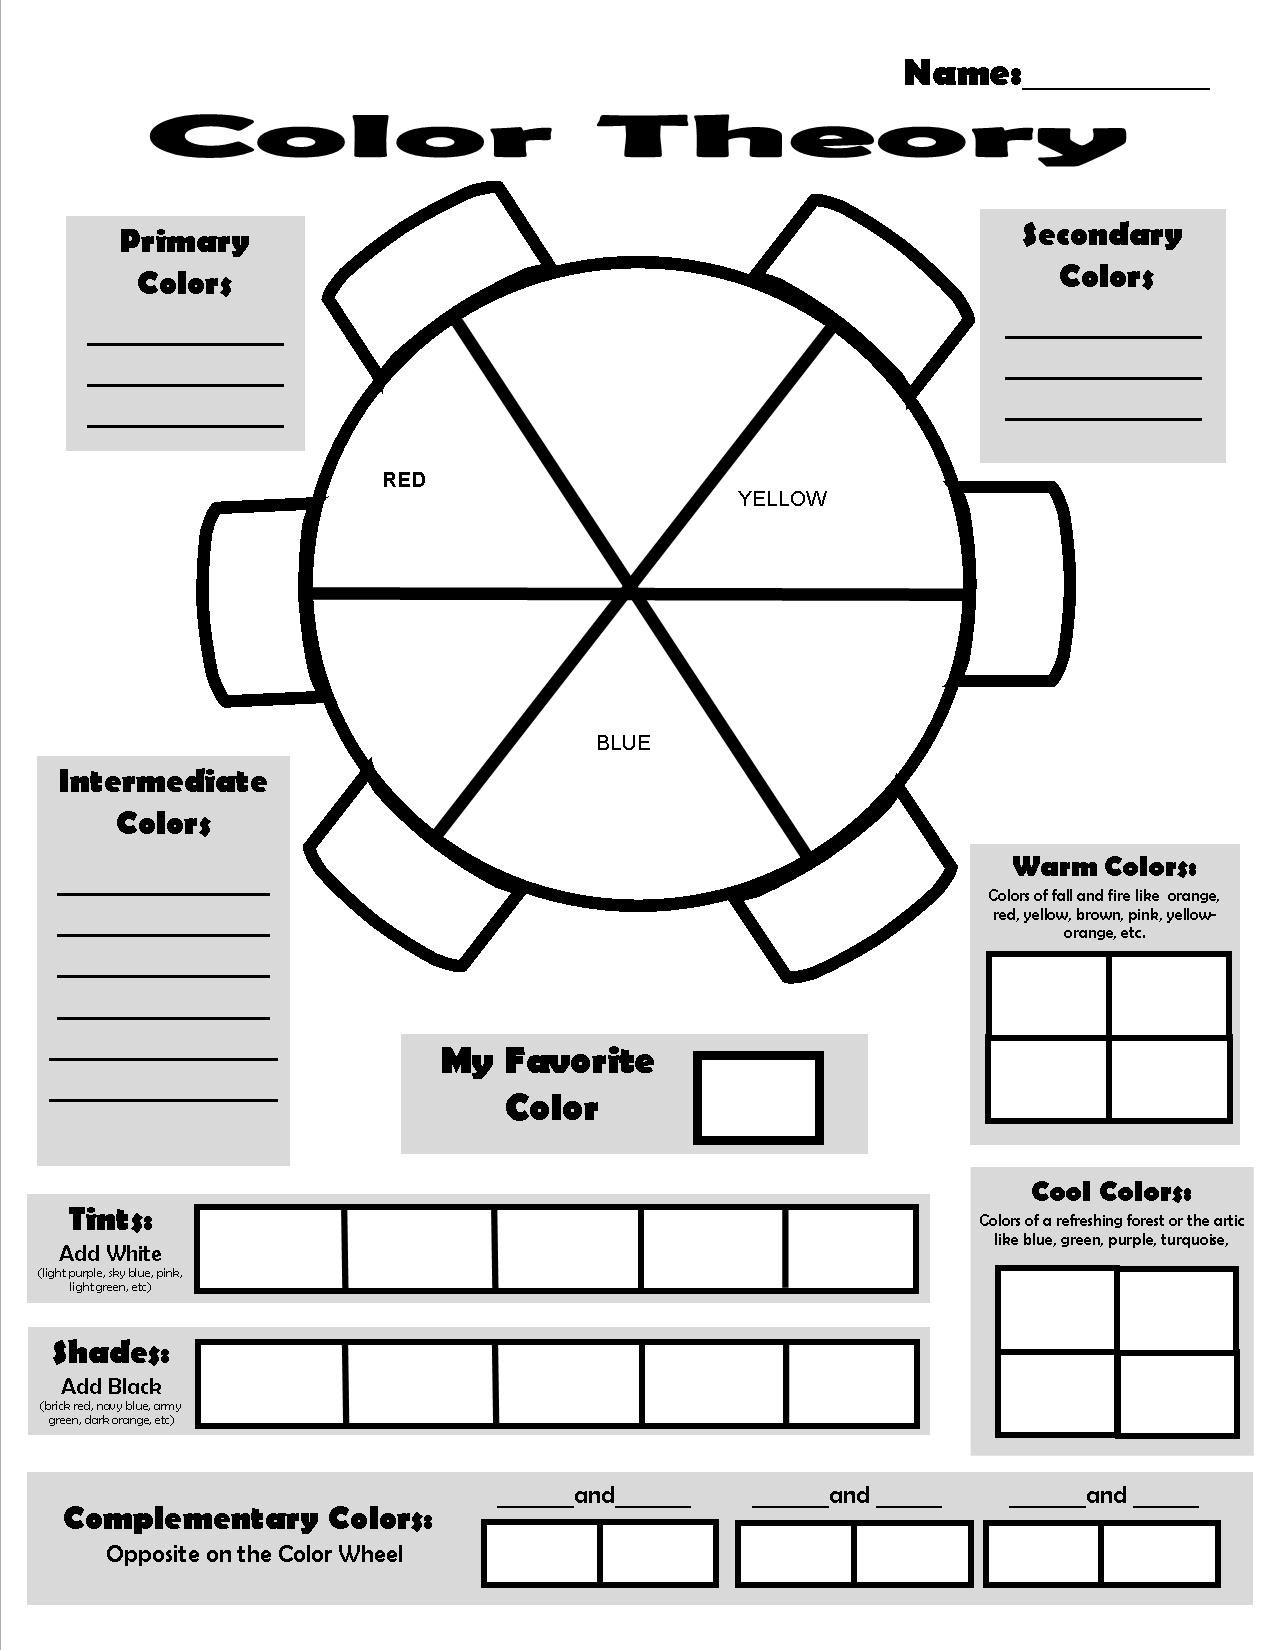 12 Best Theory Worksheets Worksheets Images On Best